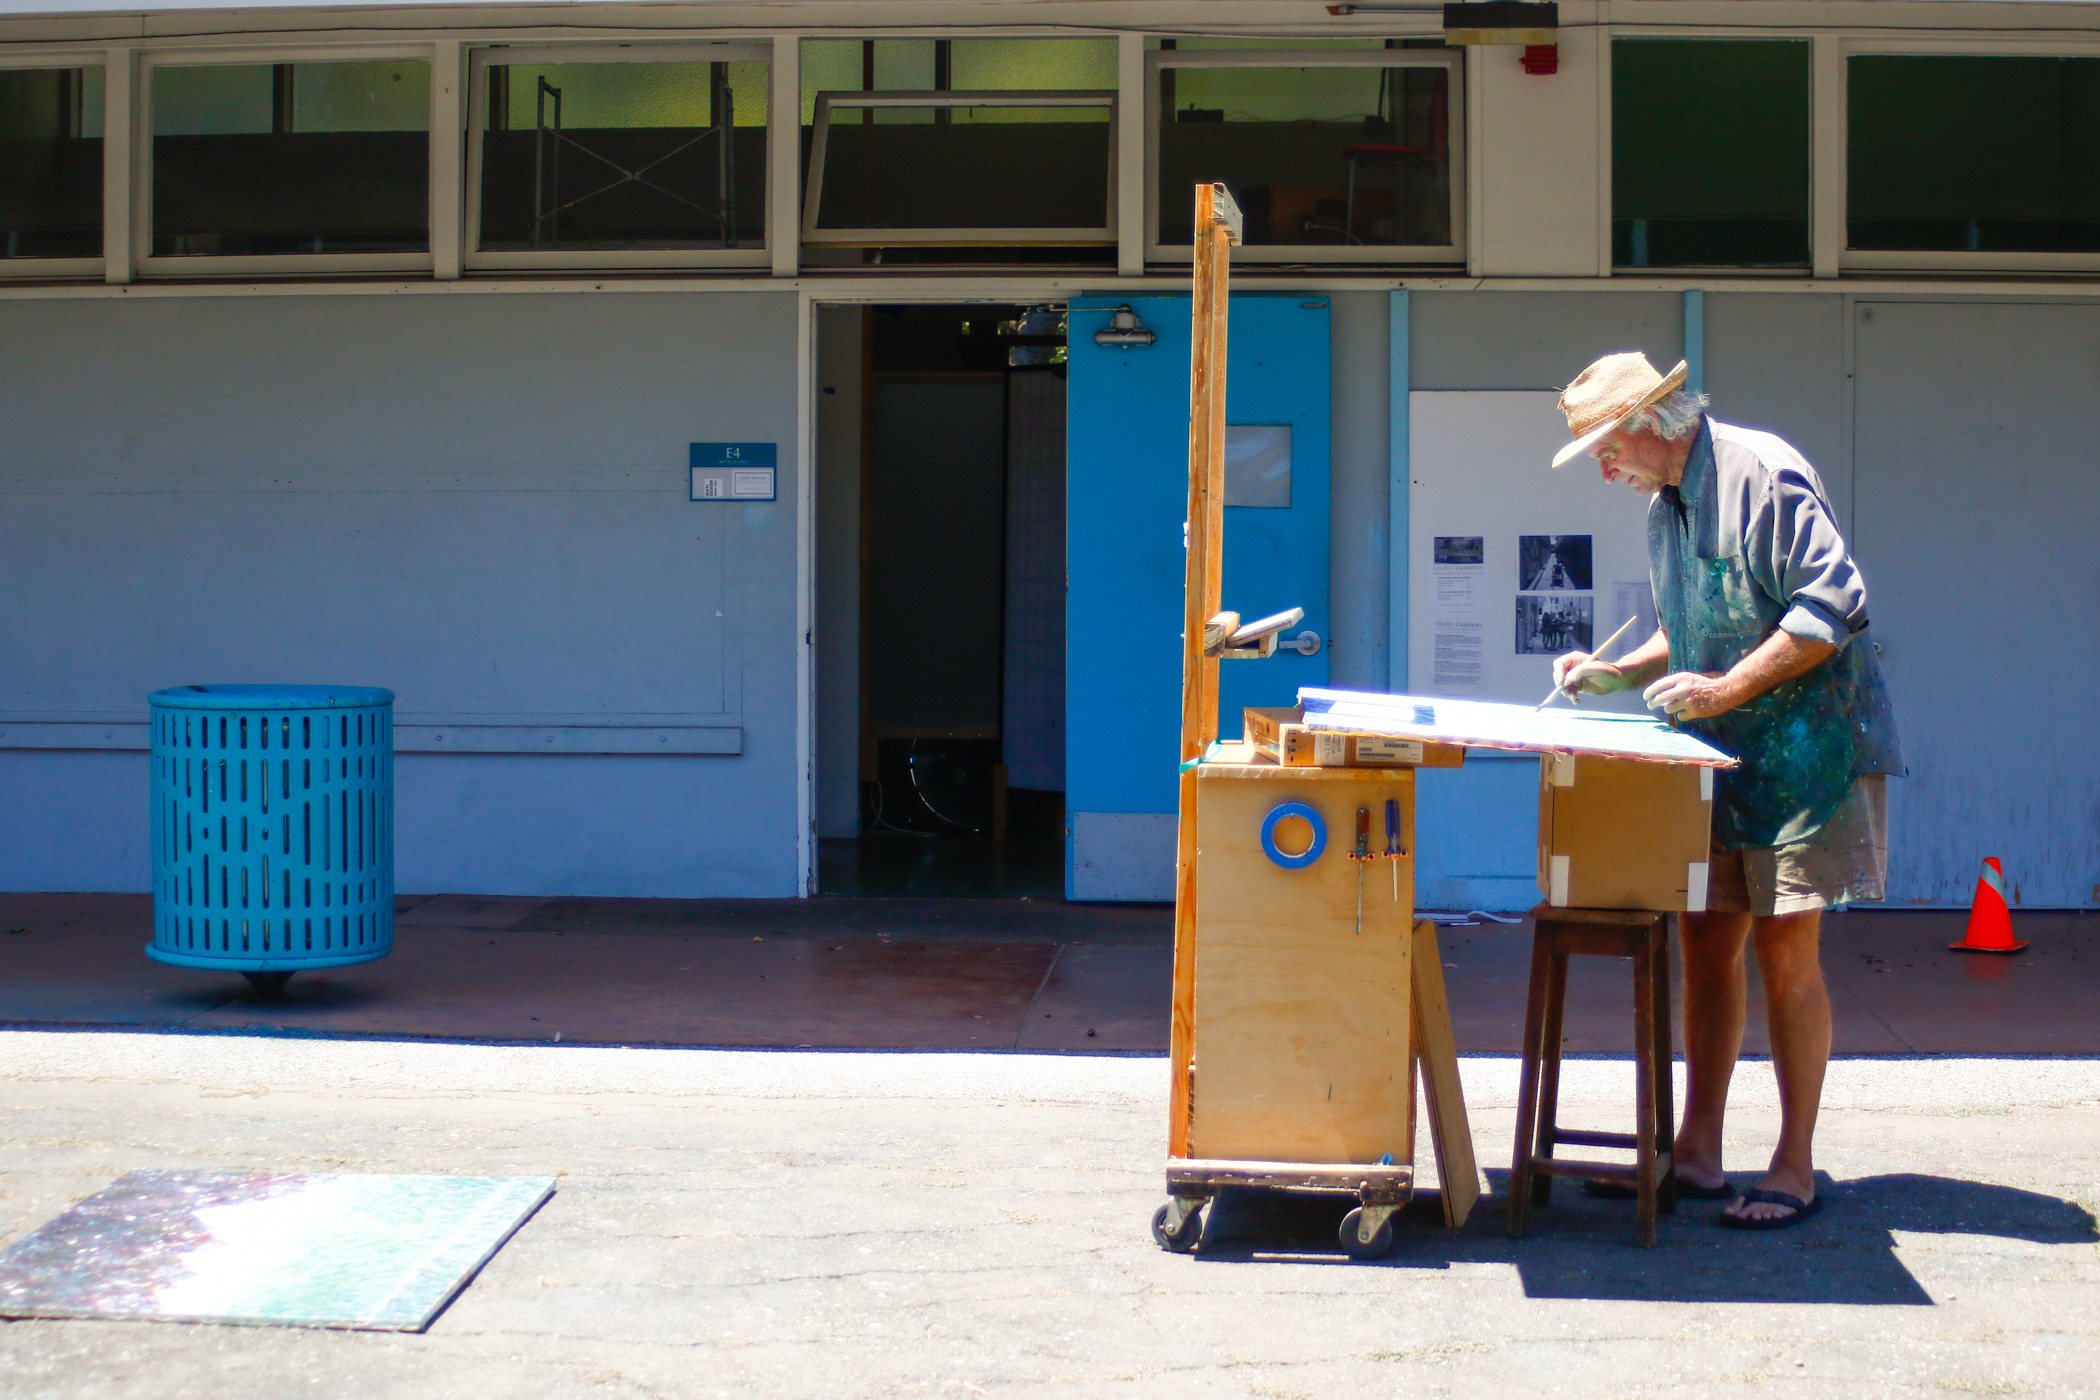 Artist Conrad Johnson works on his paintings outside of the studio he has rented for more thantwo years. He is one of 28 artists renting space at the center aspart of the CASP program to support local artists.